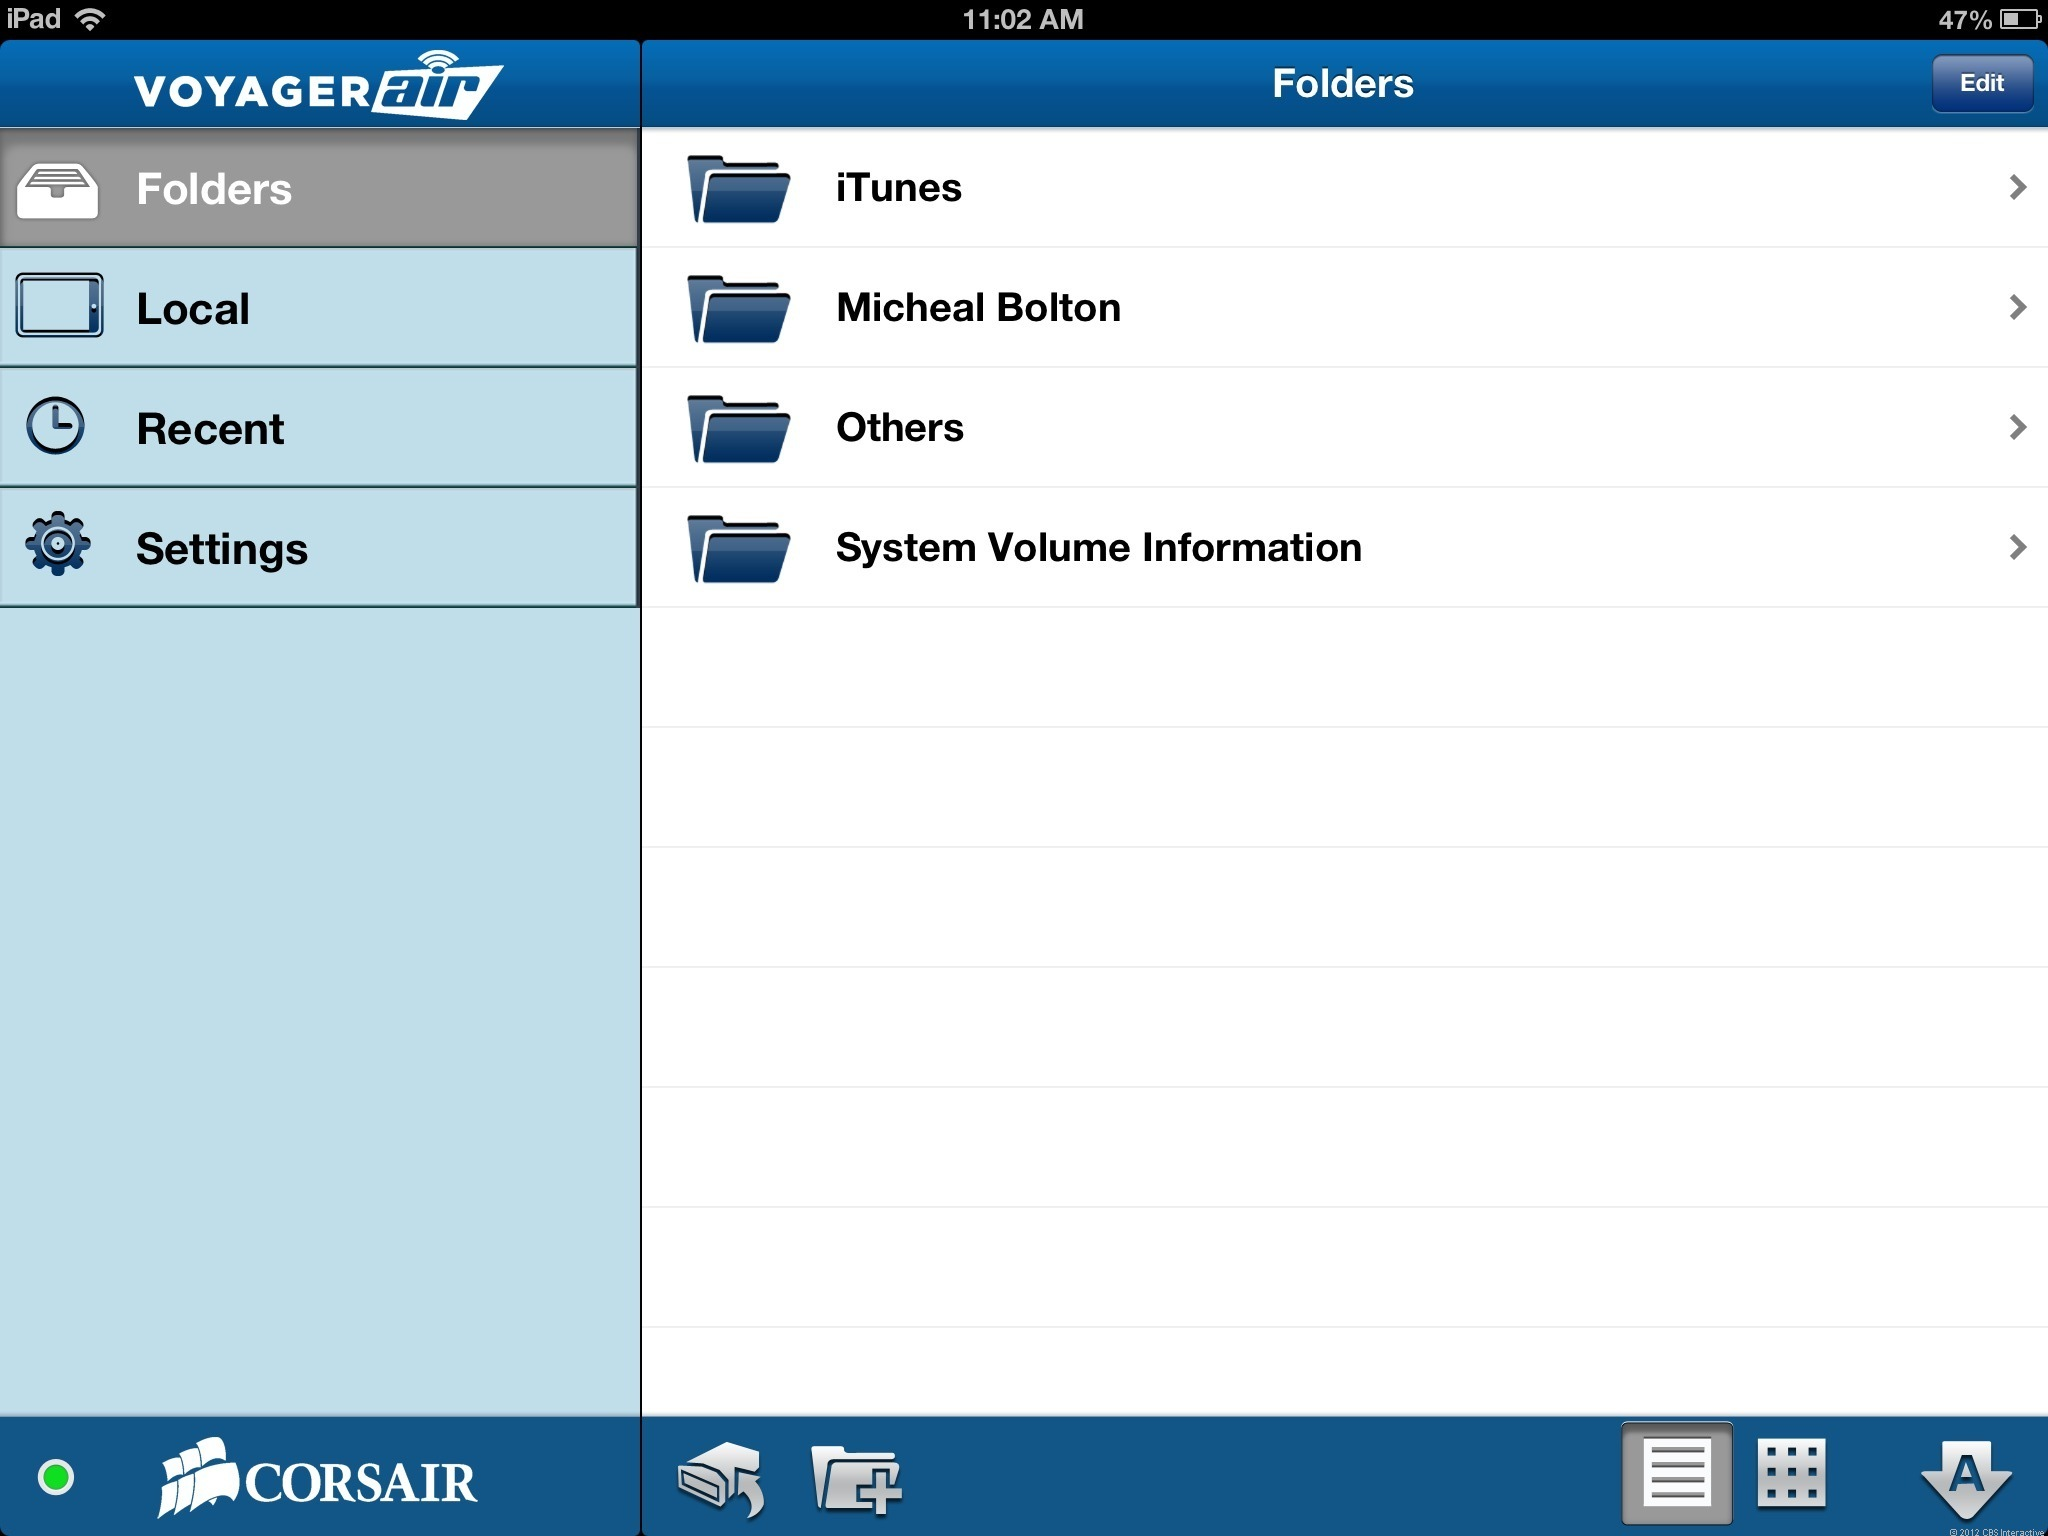 The Voyager Air mobile app doesn't offer a media organizer but just a folder browser.